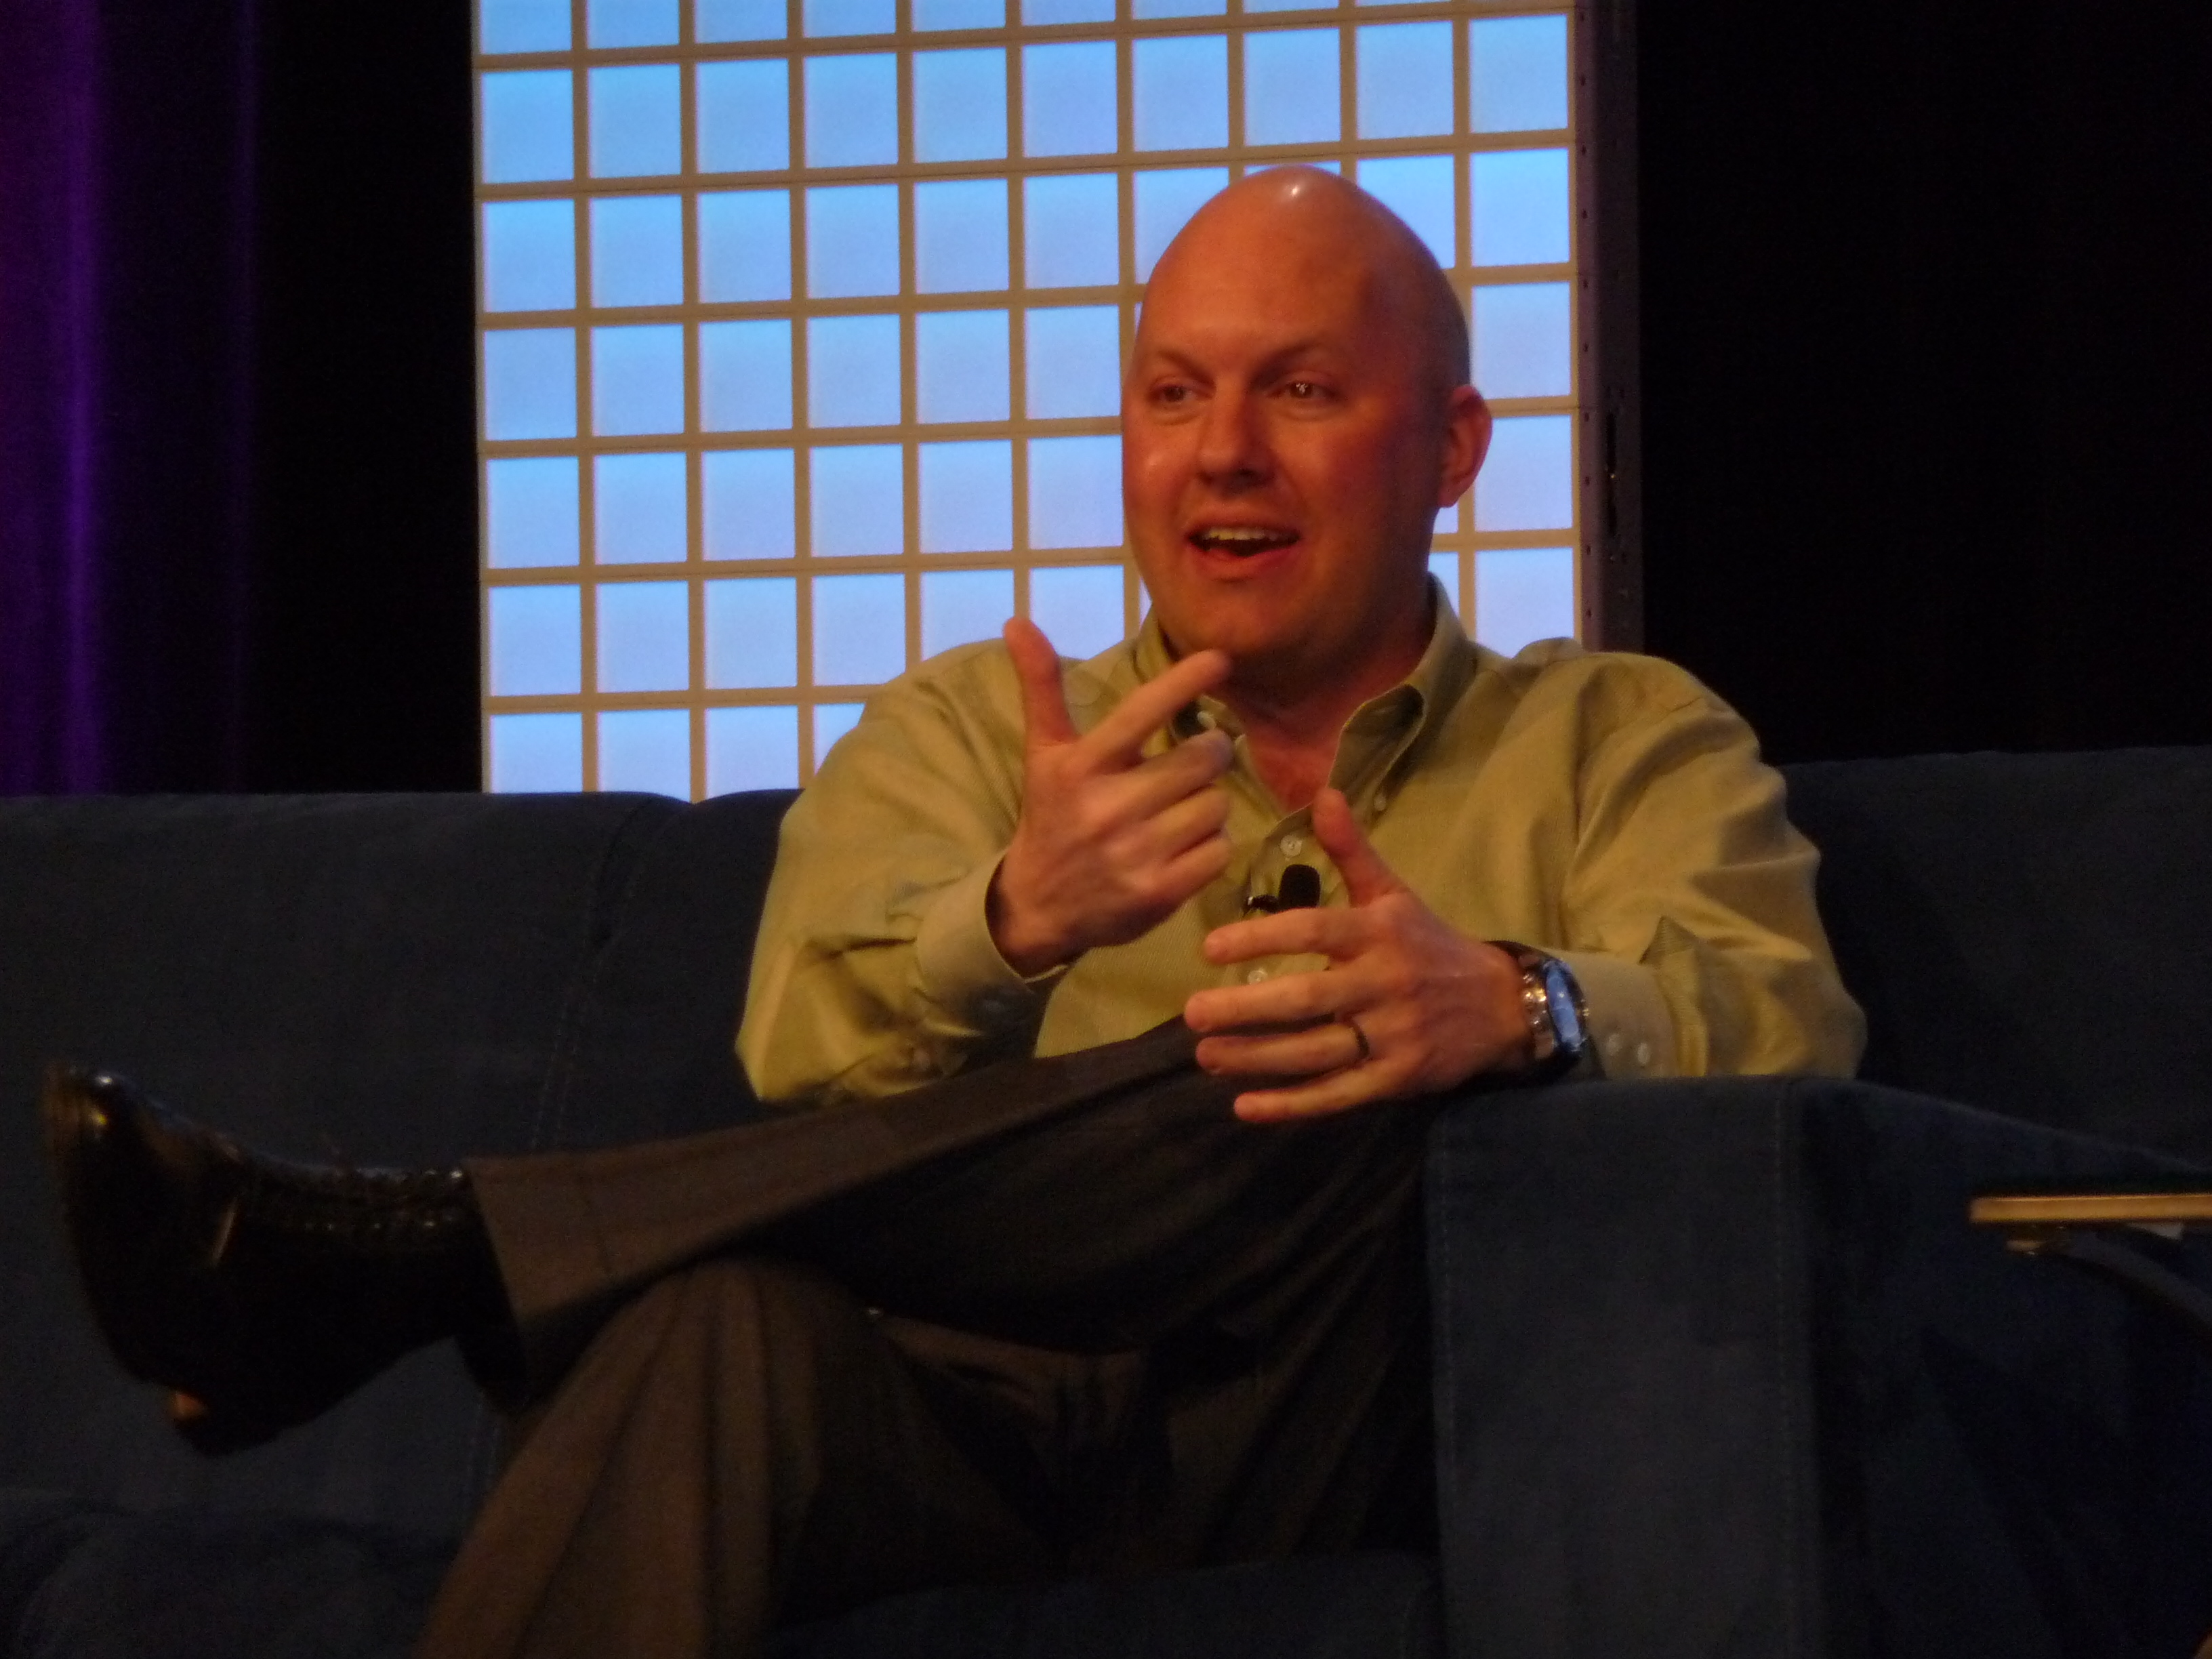 Marc Andreessen's quote #2